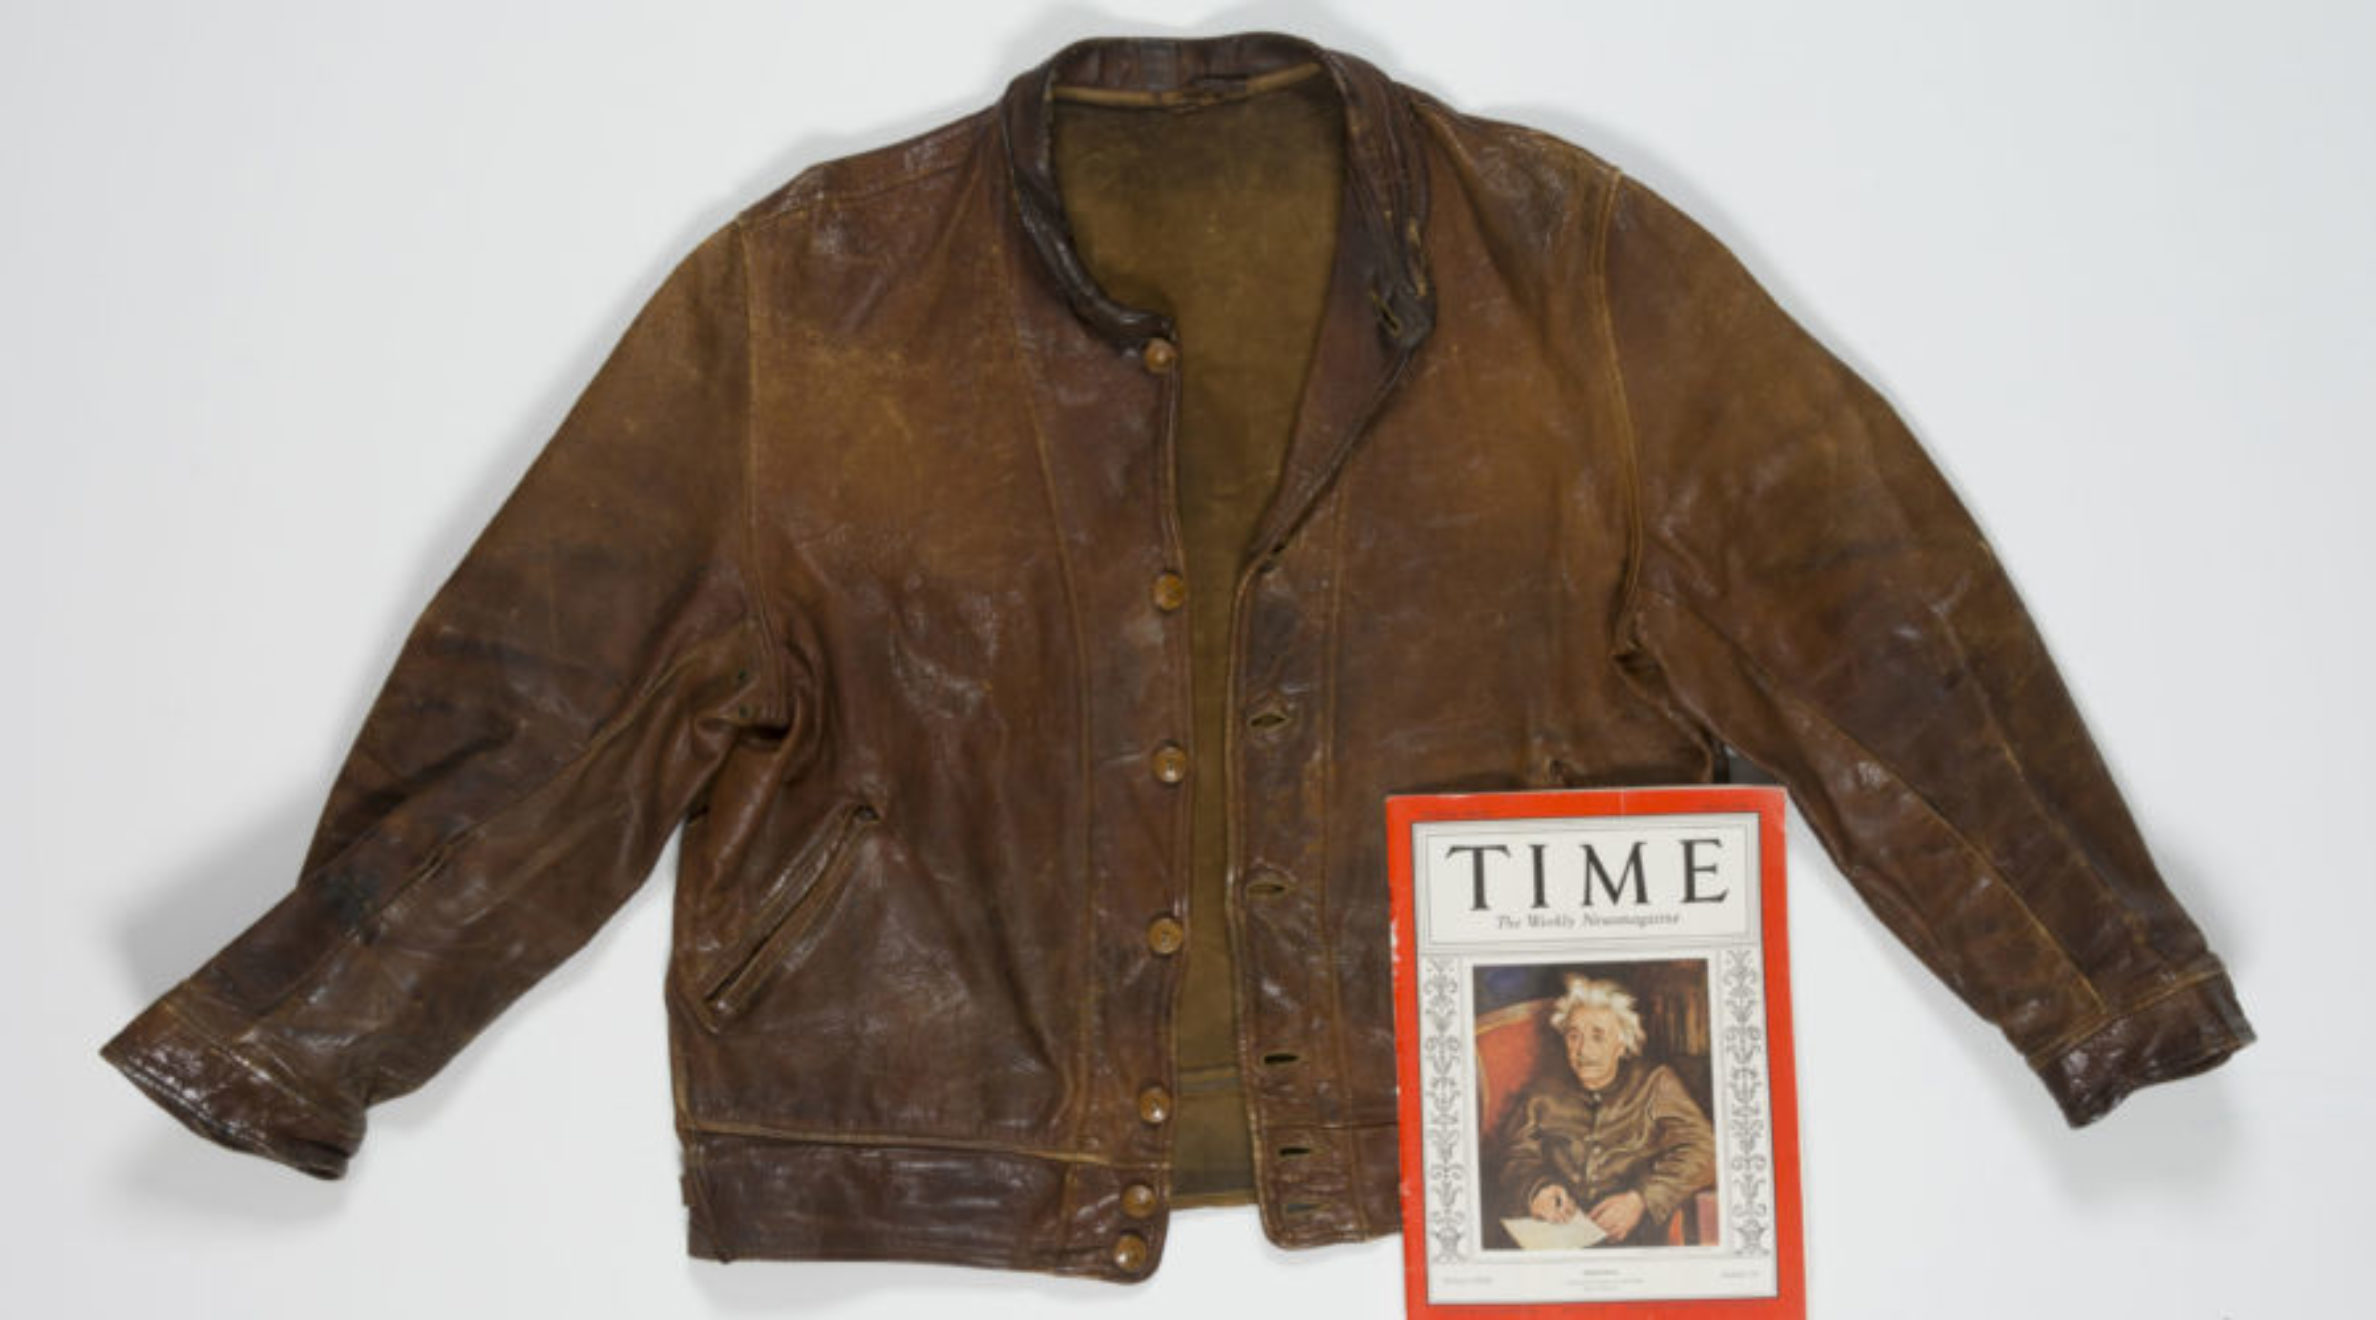 Albert Einstein's leather jacket with an issue of Time Magazine